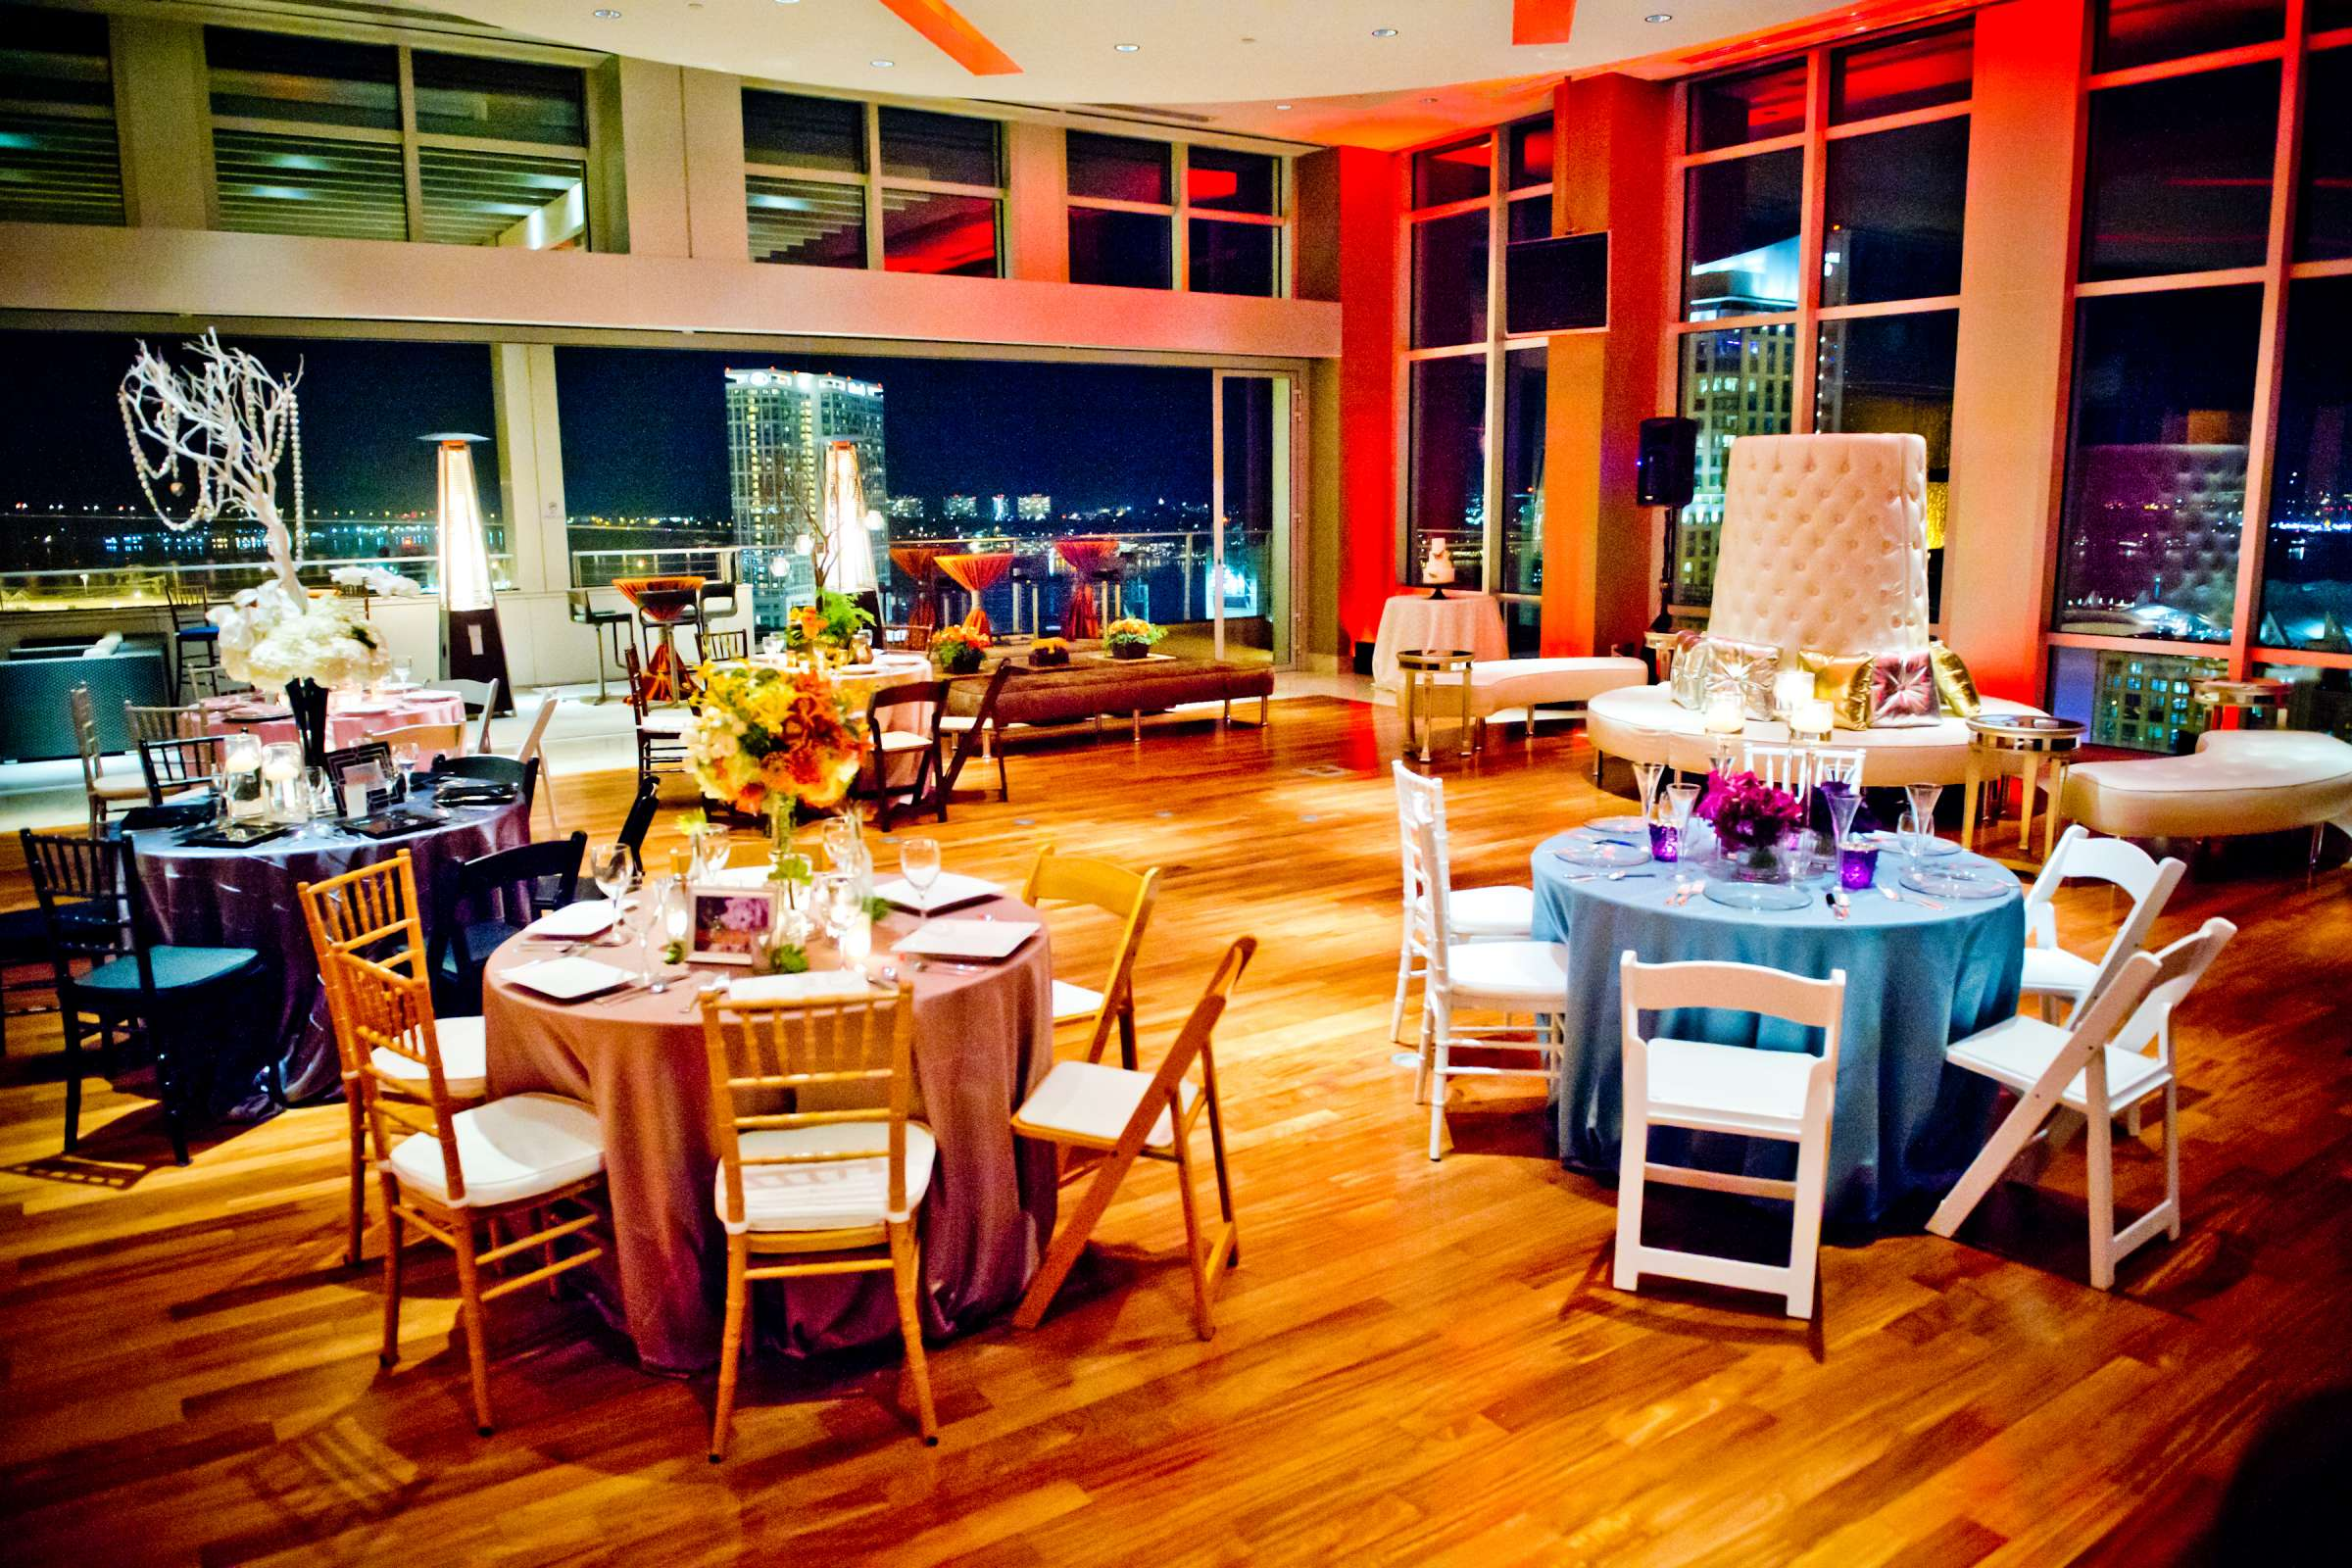 Ultimate Skybox Wedding coordinated by Creative Affairs Inc, Open House Wedding Photo #51 by True Photography